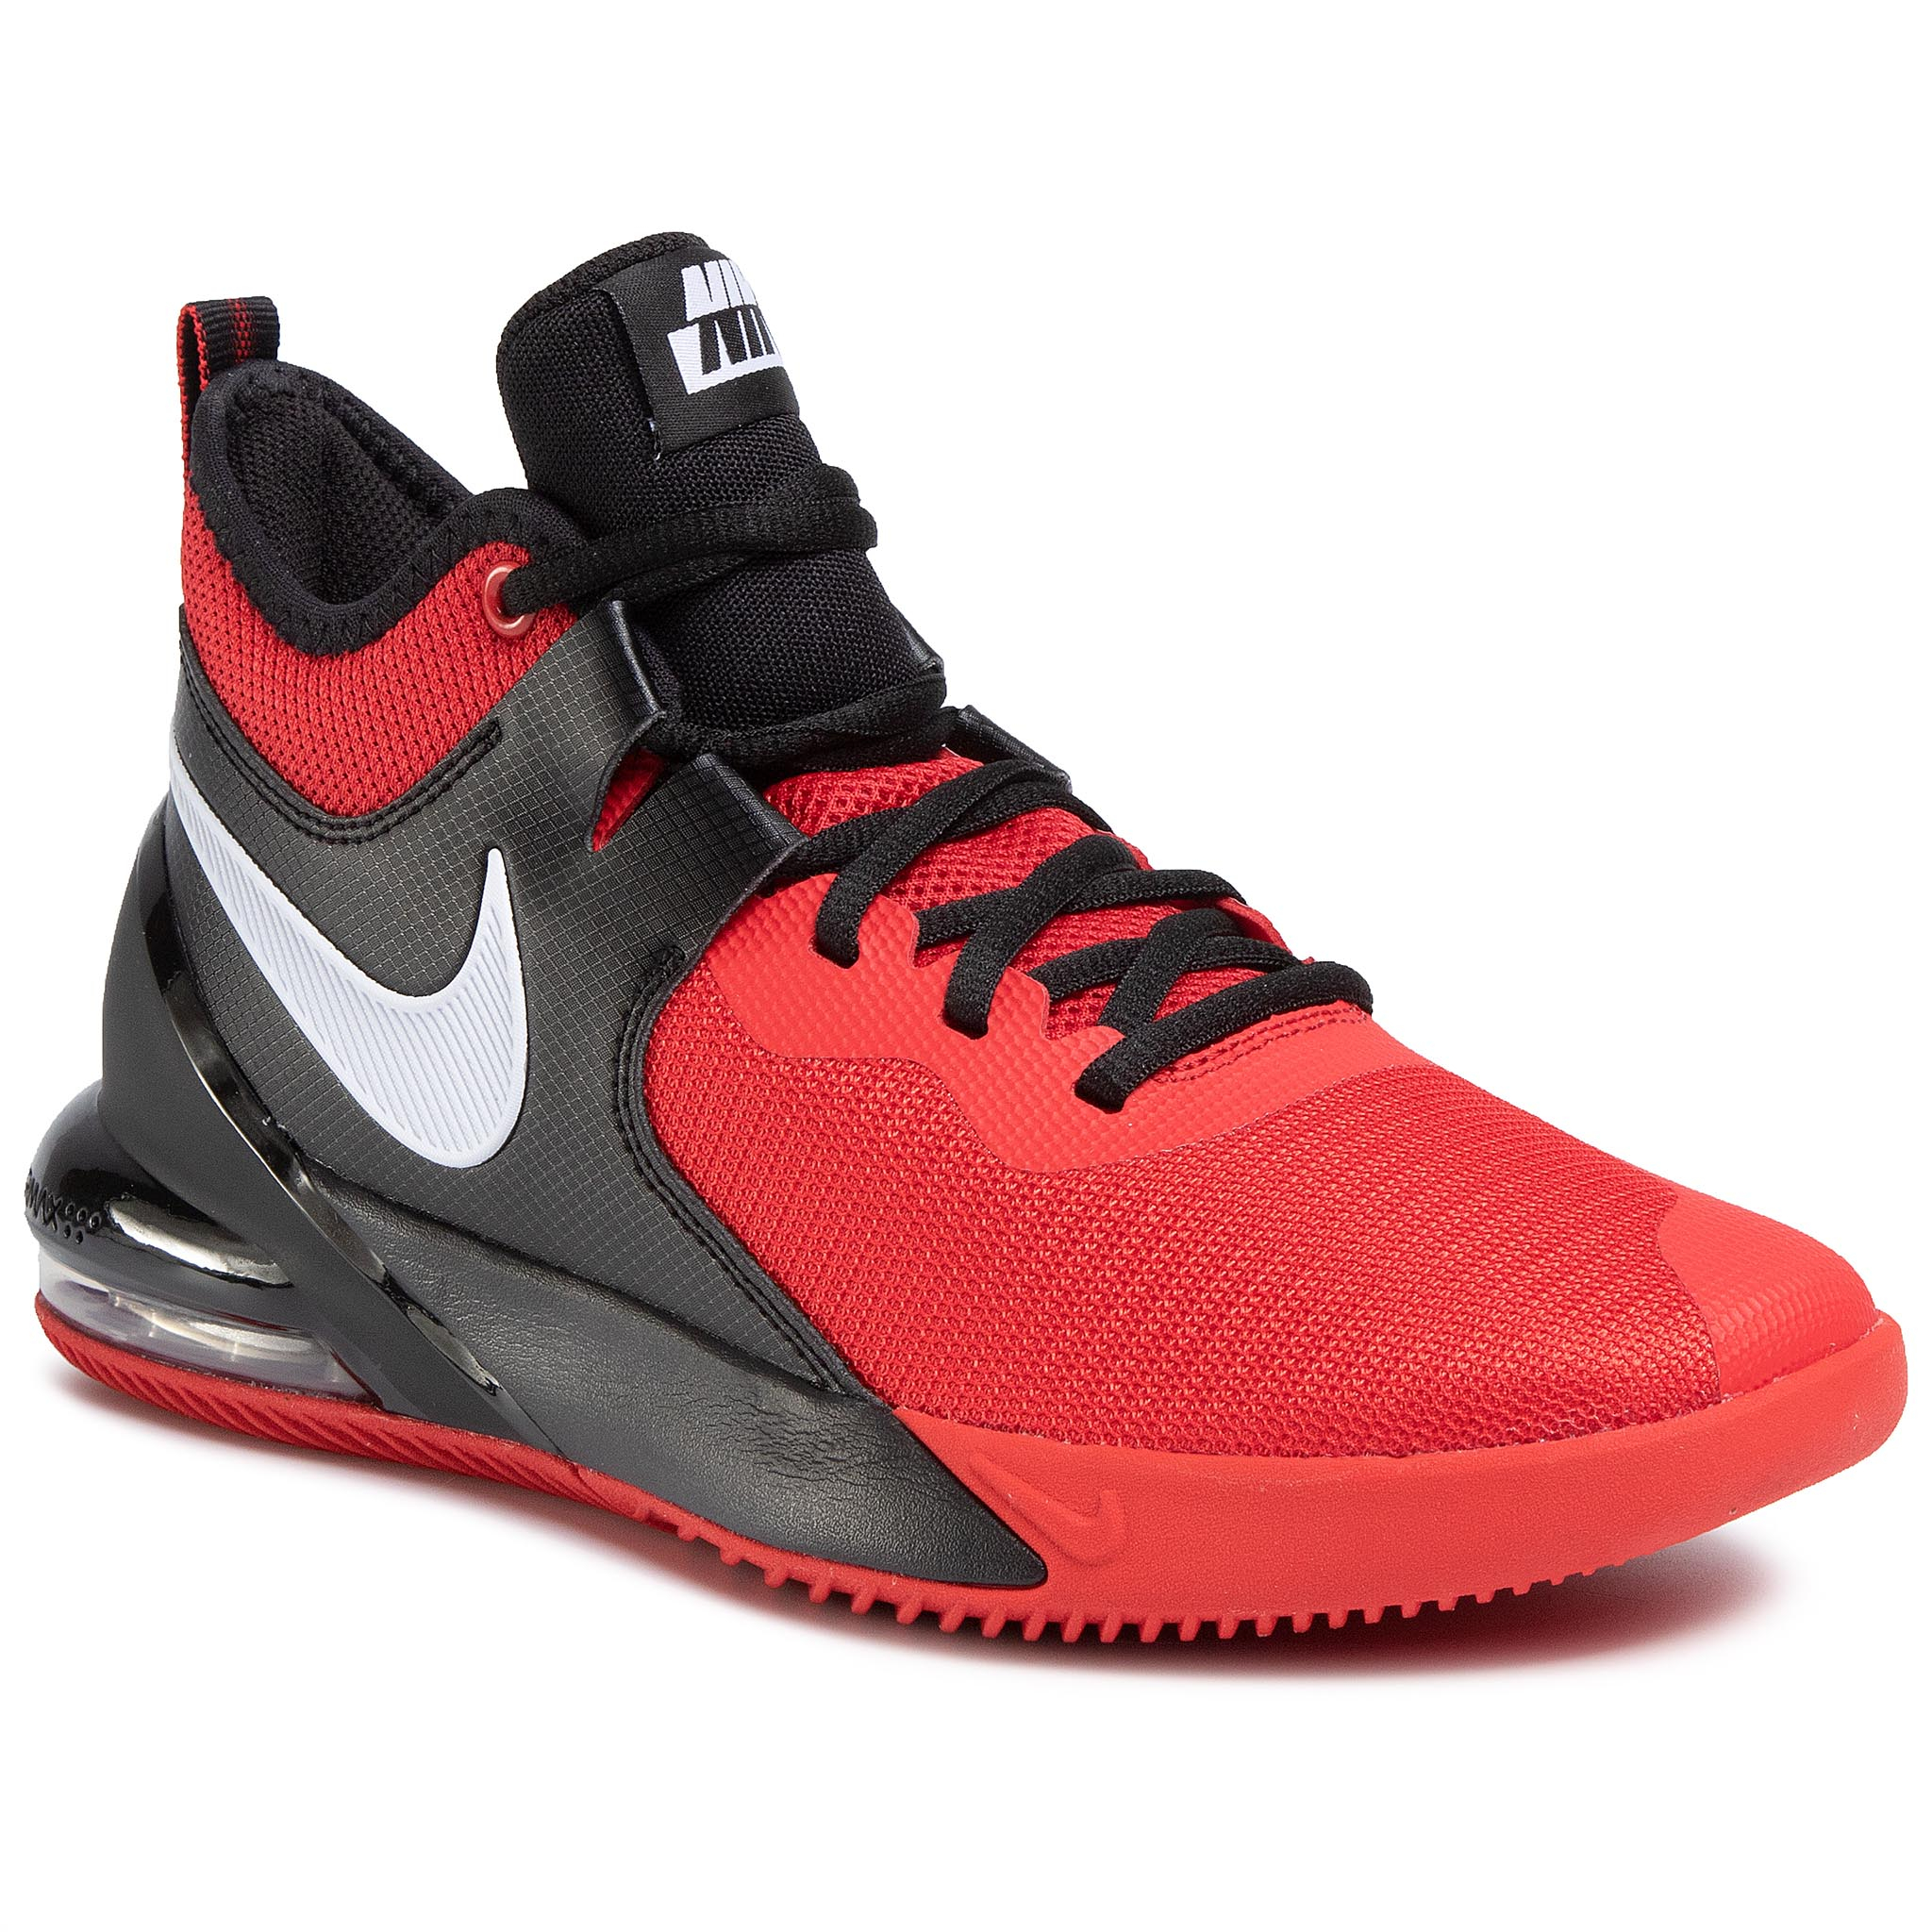 Pantofi Nike - Air Max Impact Ci1396 600 University Red/White/Black imagine epantofi.ro 2021